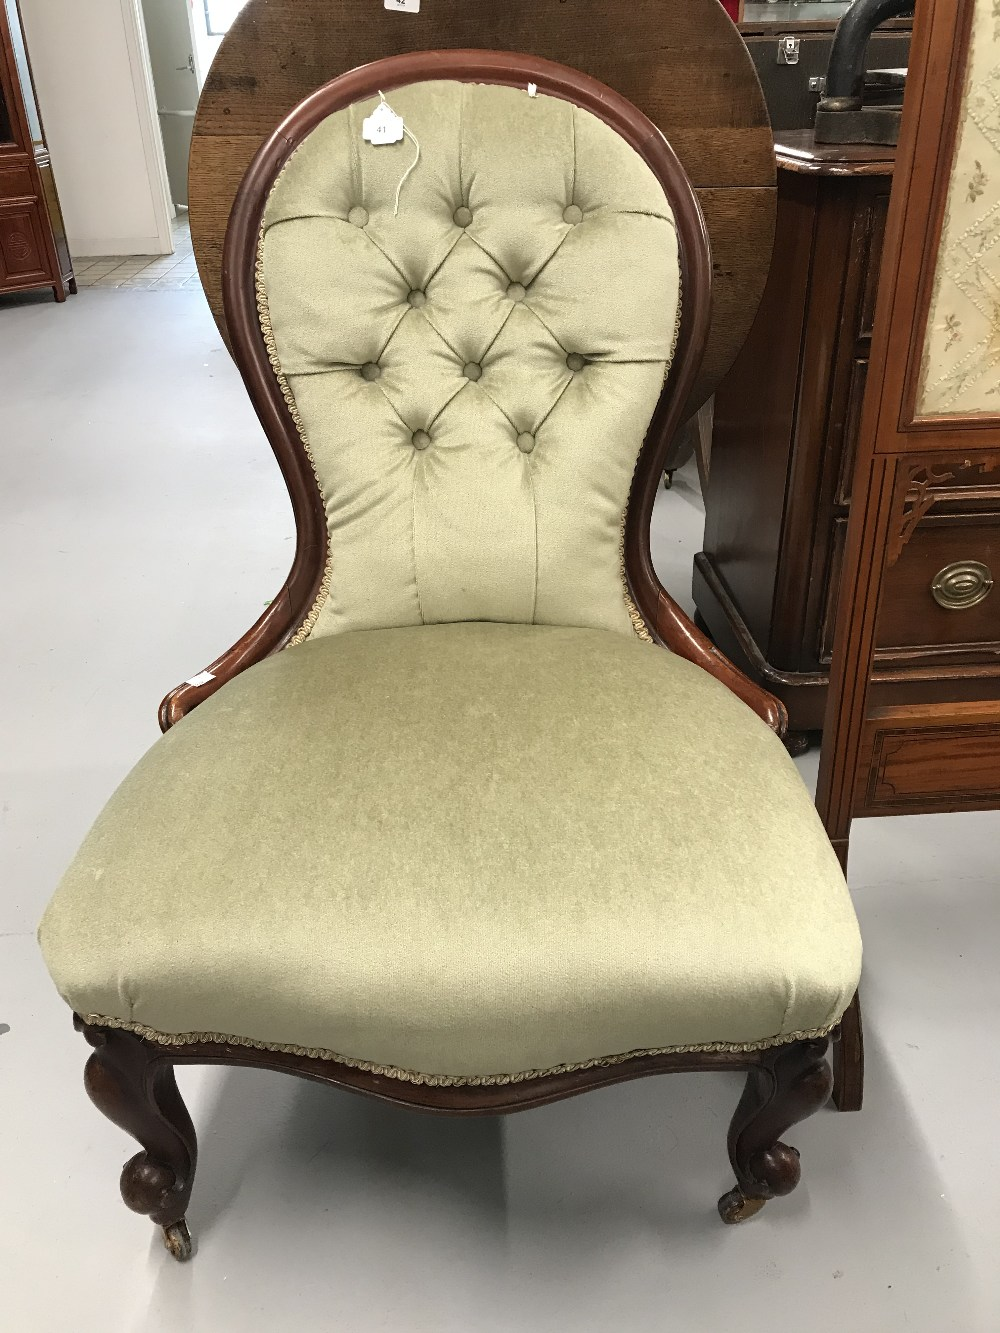 Lot 41 - 19th cent. Mahogany balloon backed nursing chair on cabriole supports with simple brass castors.